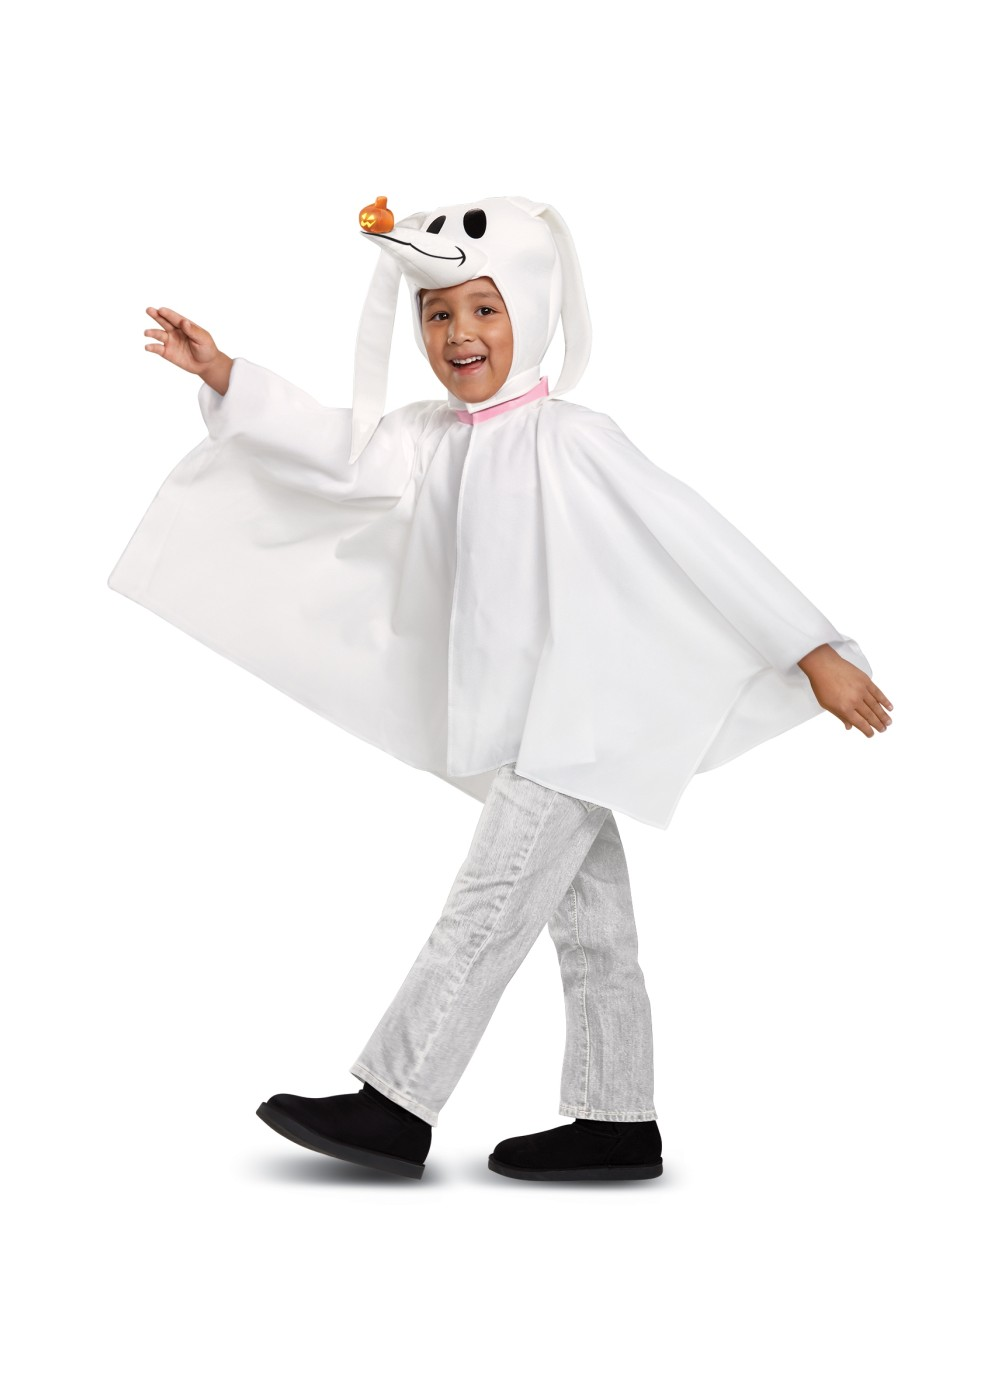 Zero Classic Toddler Costume - Holiday Costumes - New for 2018